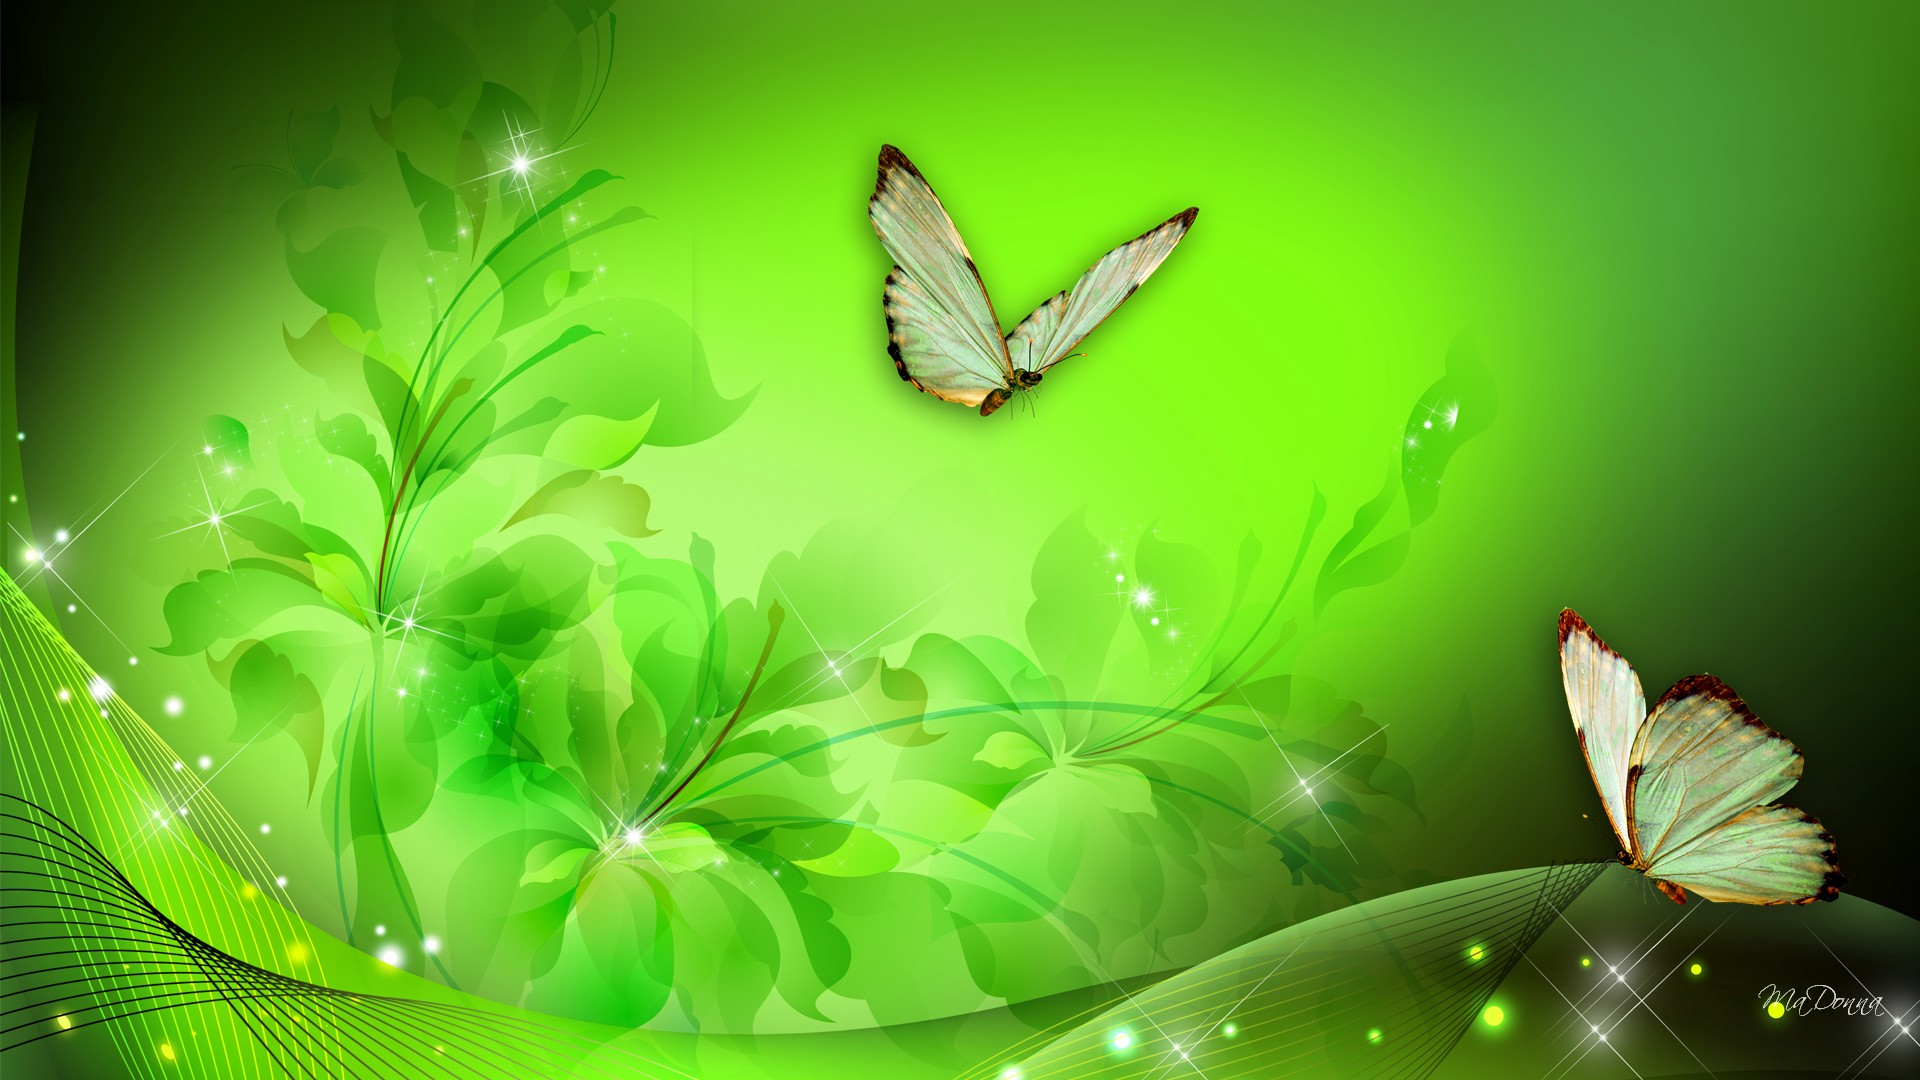 Greenfantasy-art-HD-Green-Floral-Fantasy-wallpaper-wpc9005667